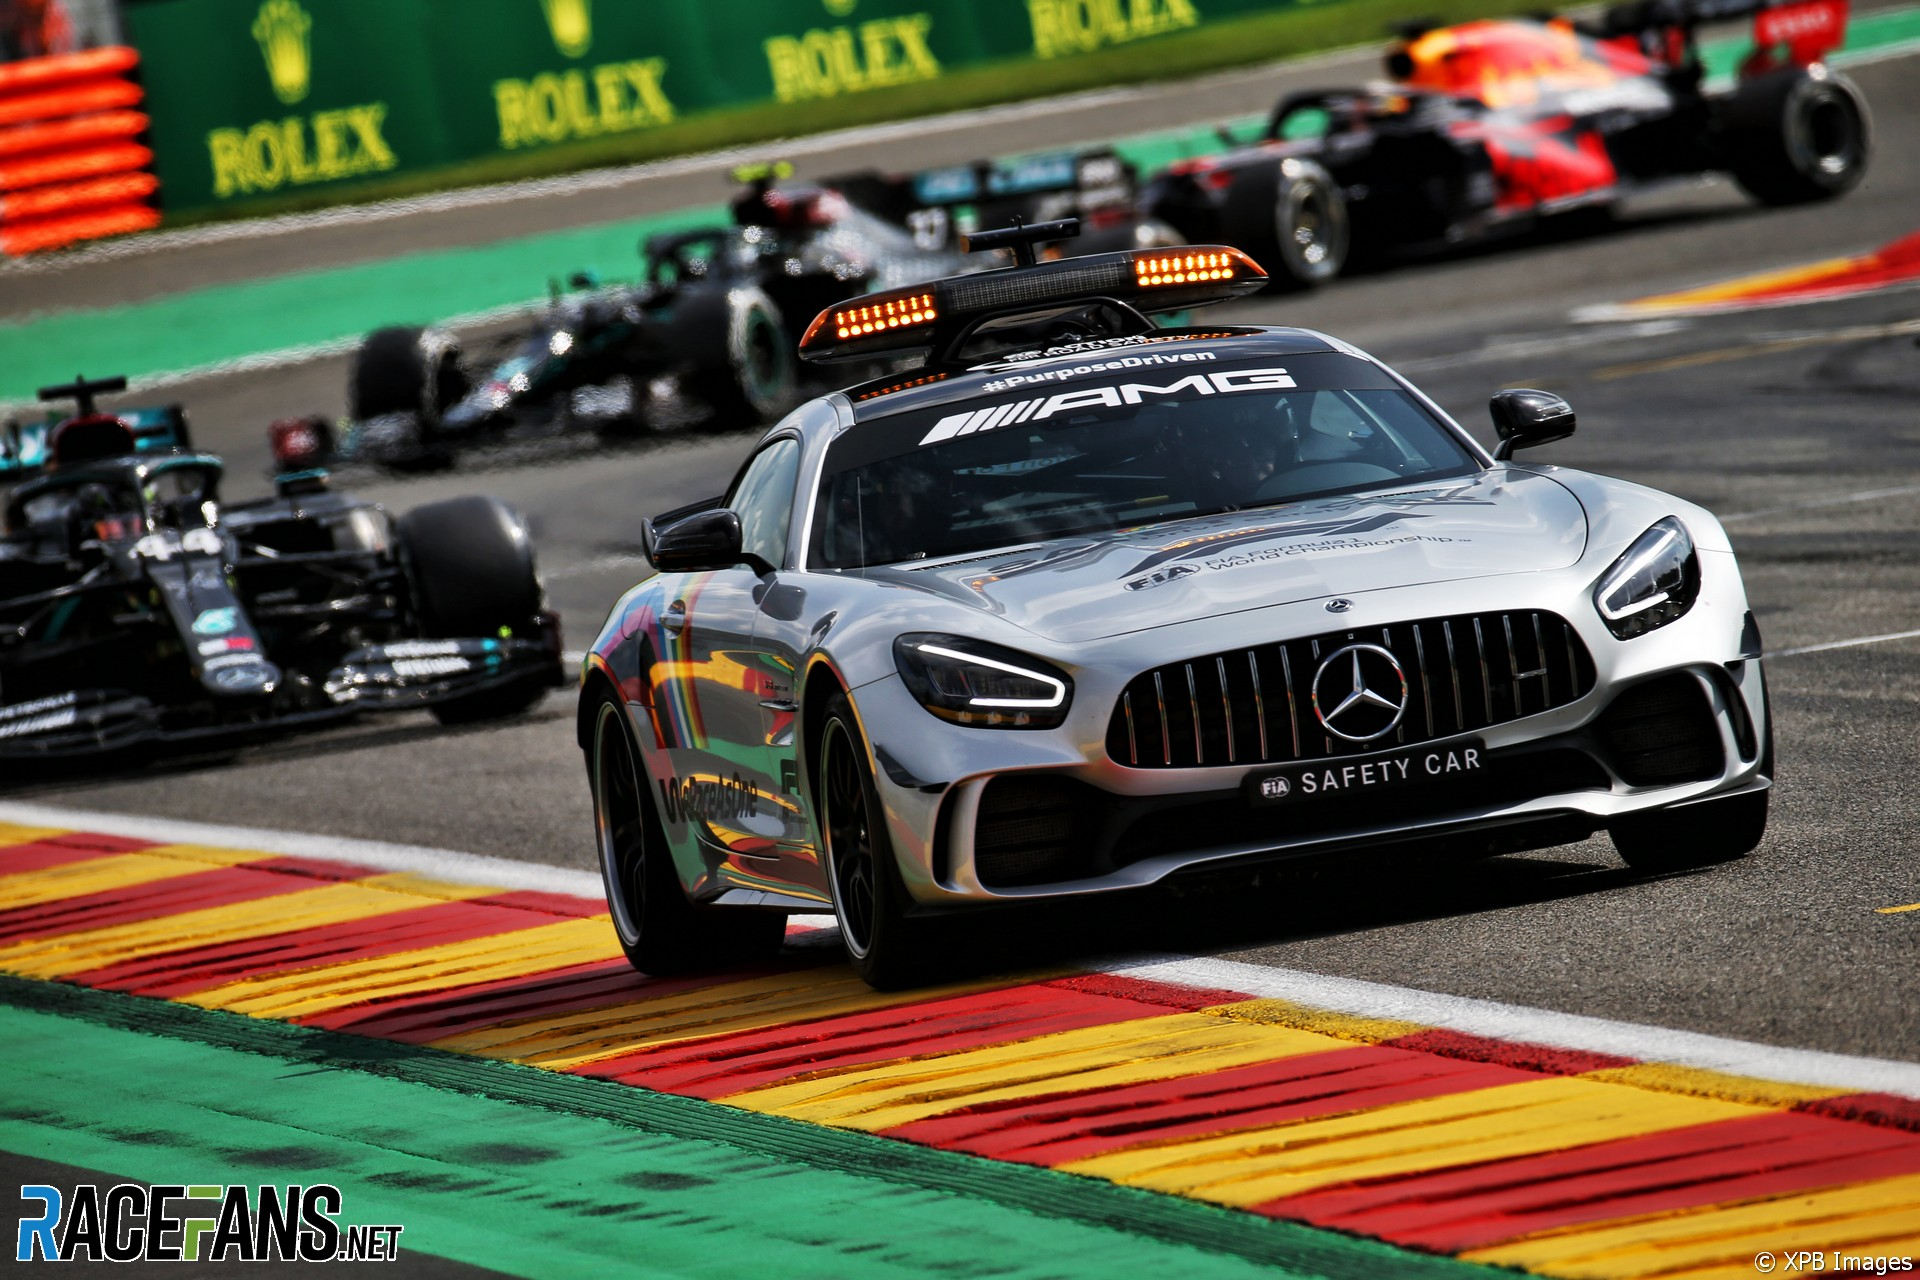 Safety Car, Spa-Francorchamps, 2020